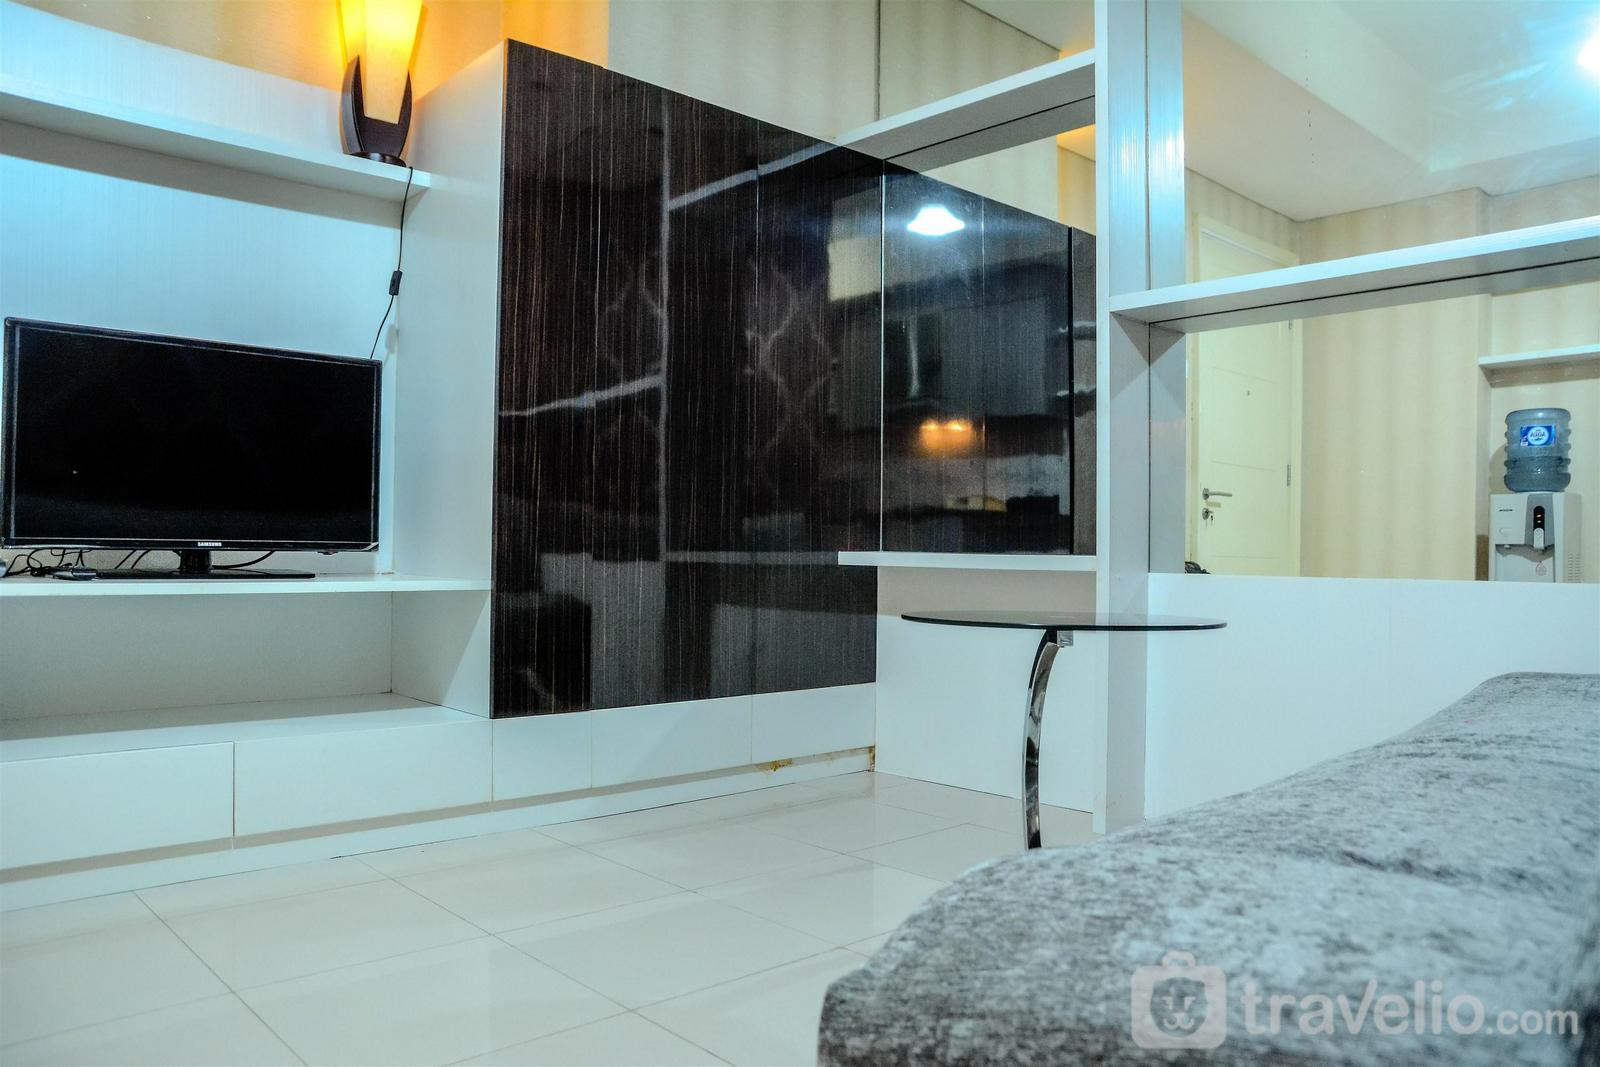 Cosmo Terrace Thamrin - Minimalist 1BR Cosmo Terrace Thamrin City By Travelio